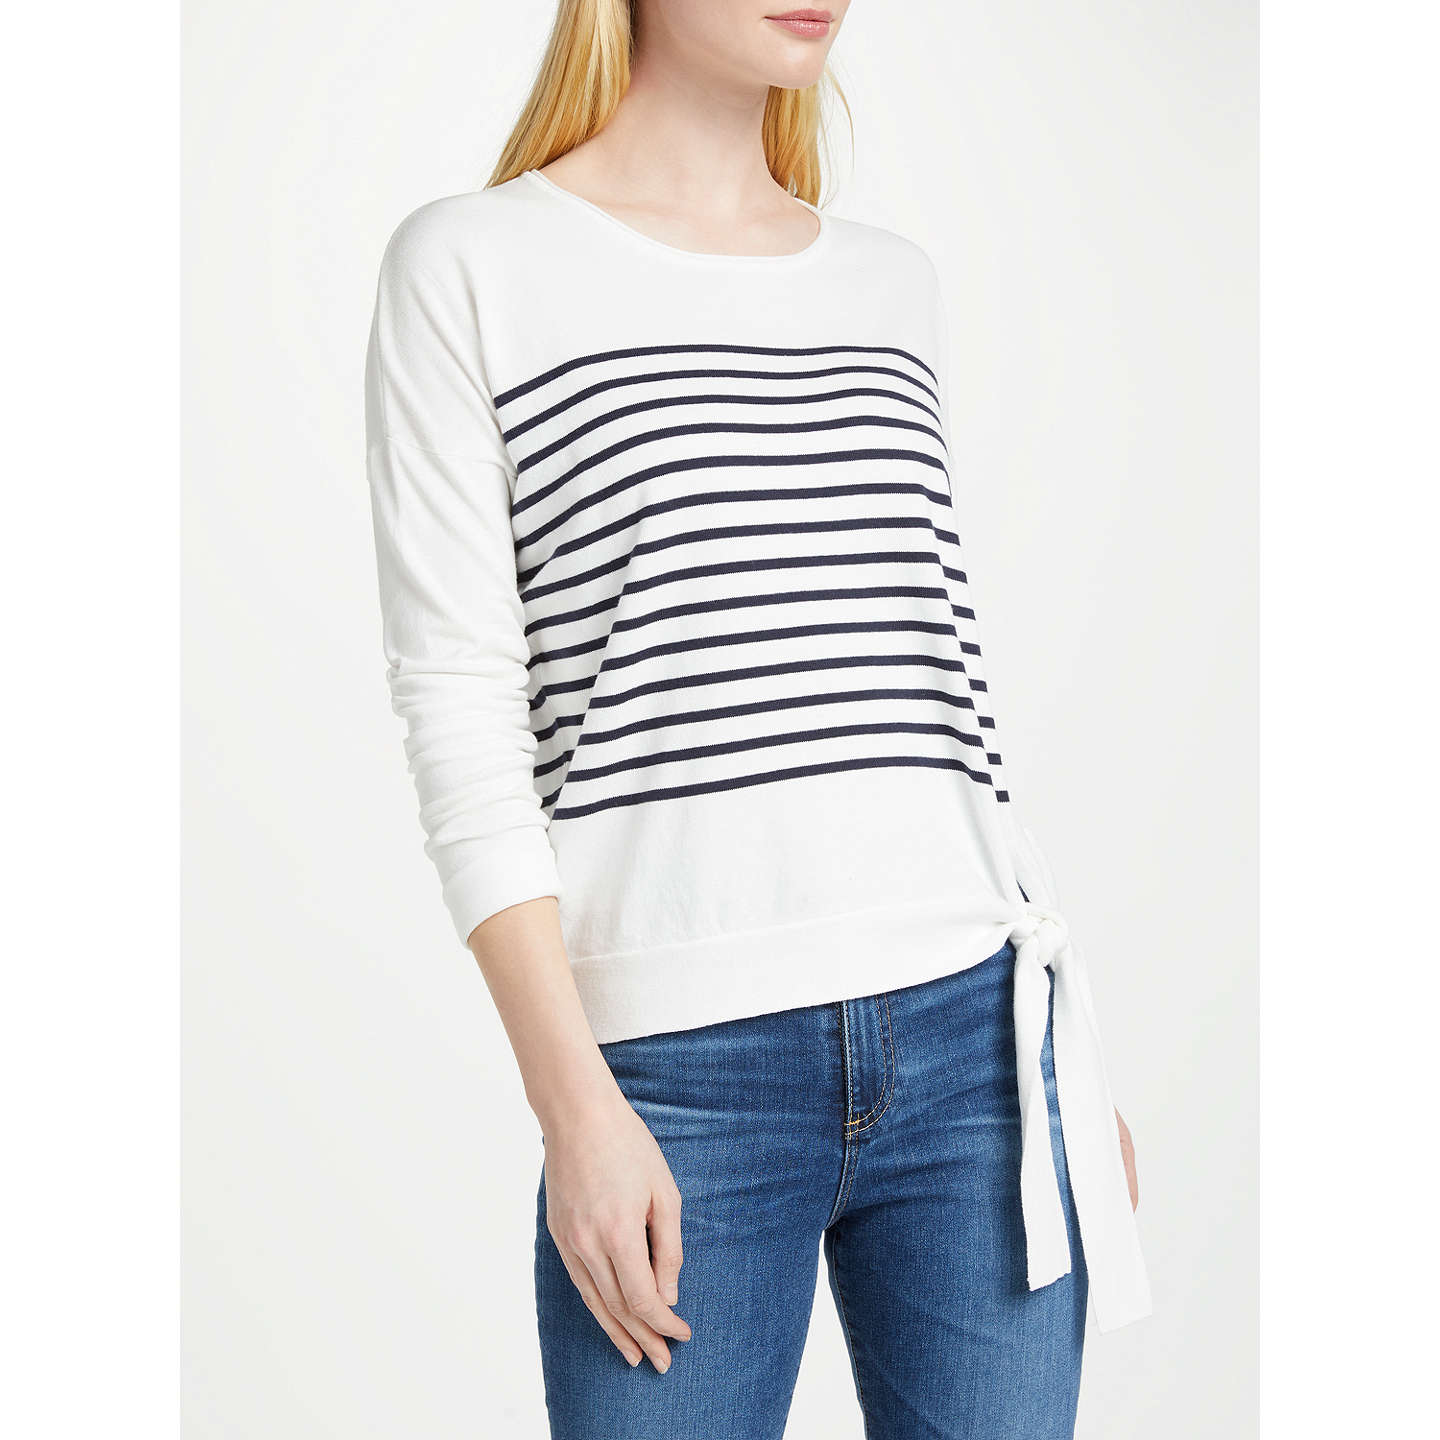 BuyOui Striped Tie Jumper, Blue/White, 8 Online at johnlewis.com